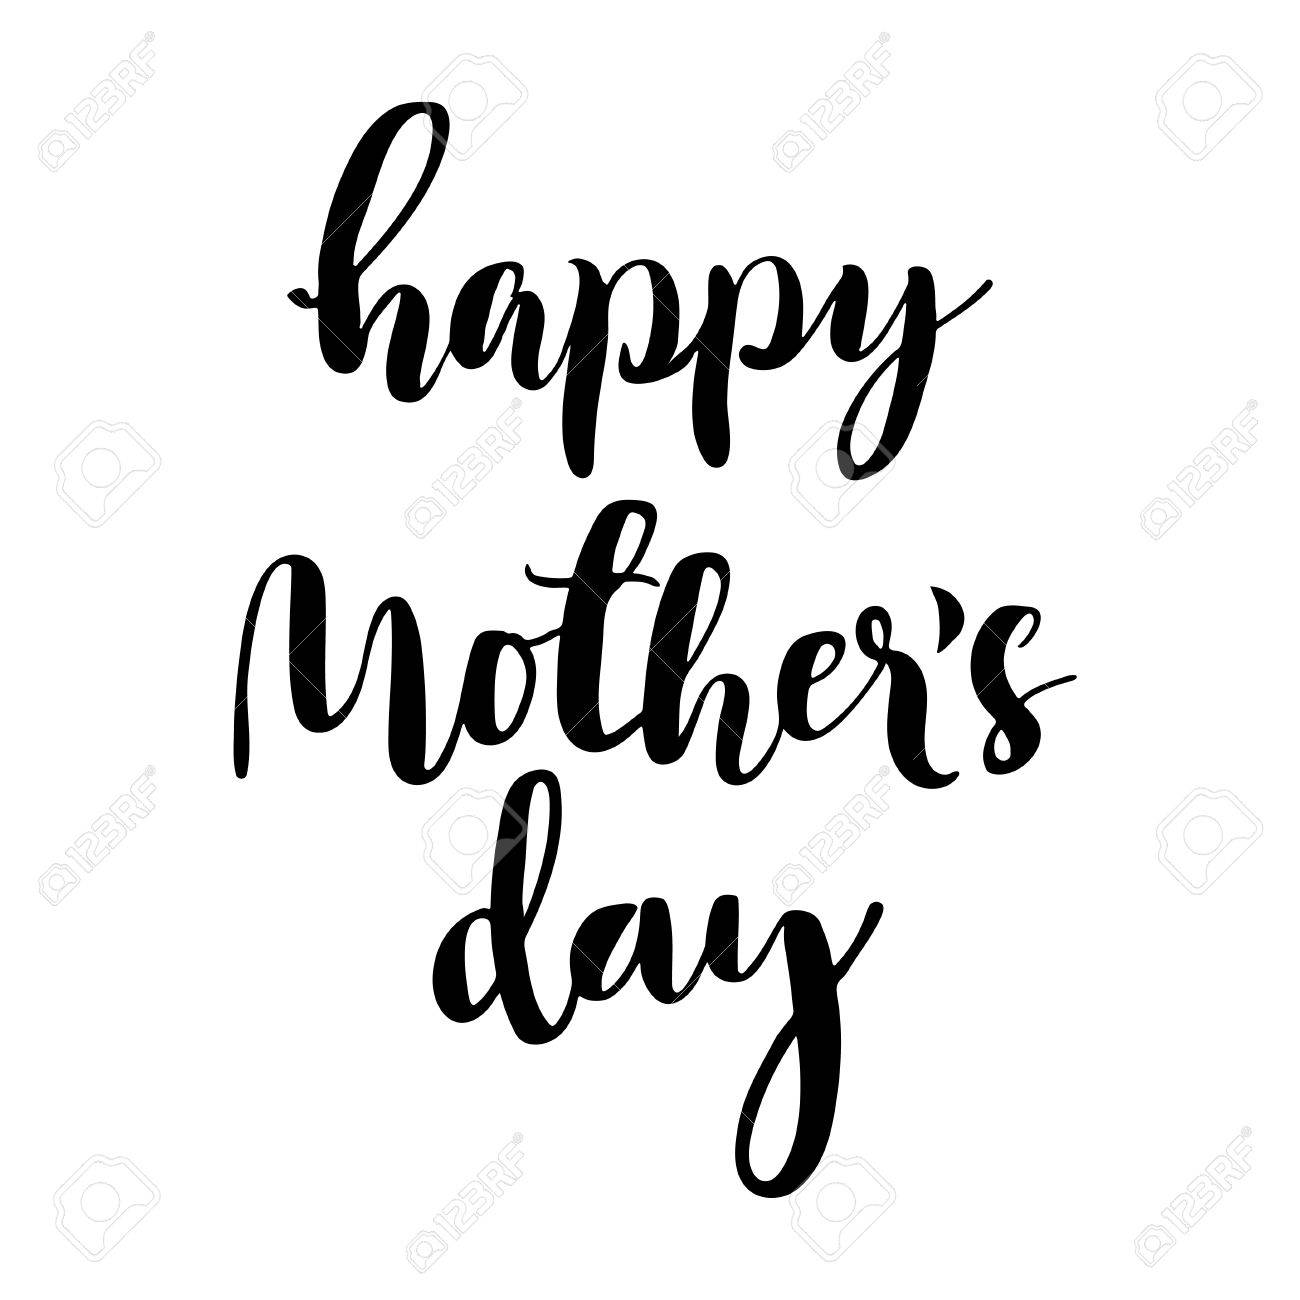 Happy mothers day black and white clipart svg library stock Mothers Day Clipart Black And White | Free download best Mothers Day ... svg library stock